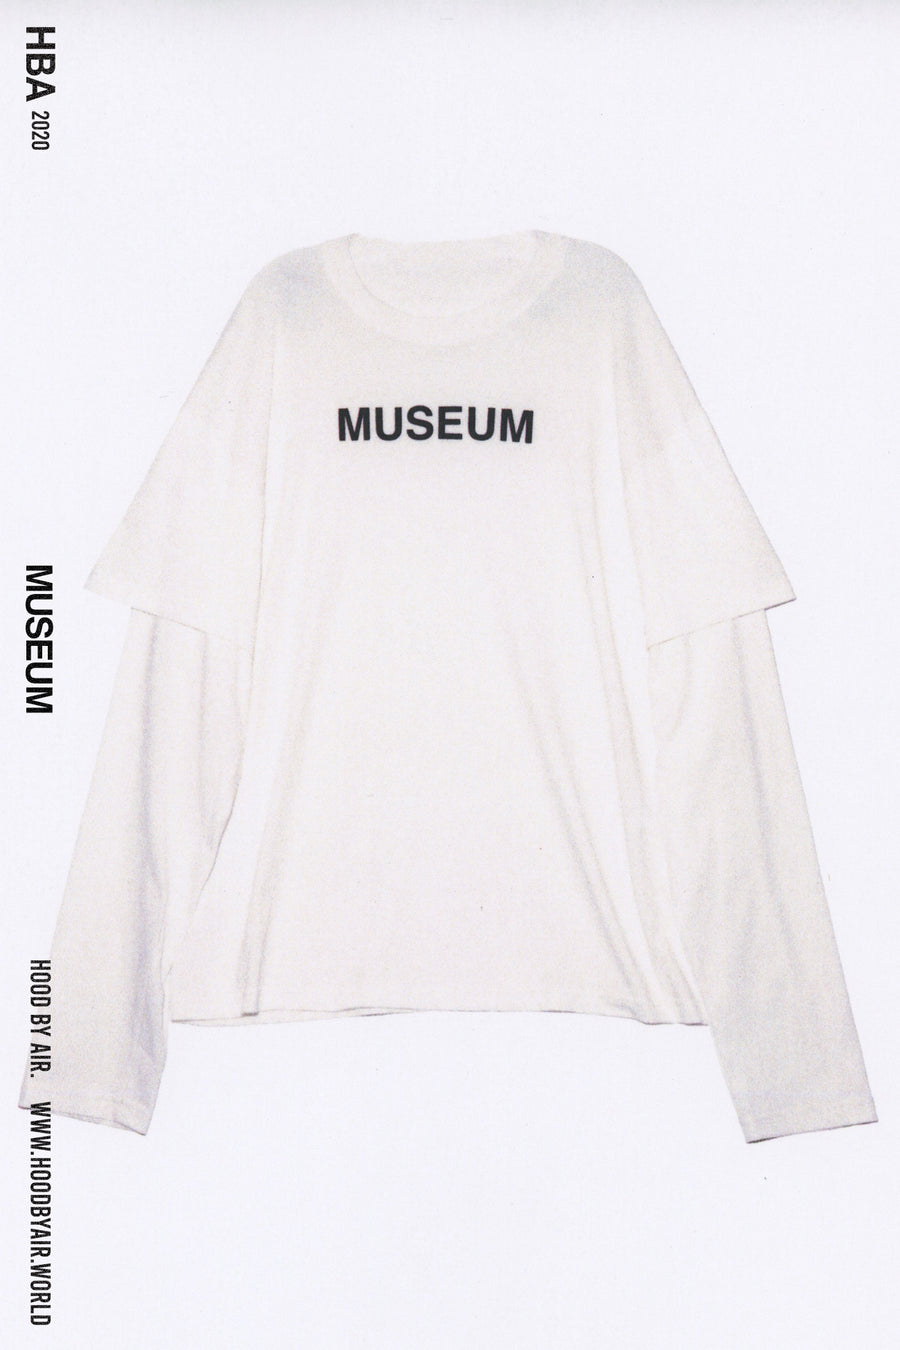 HBA-M-002-02 MUSEUM SHORT OVER LONG WHITE